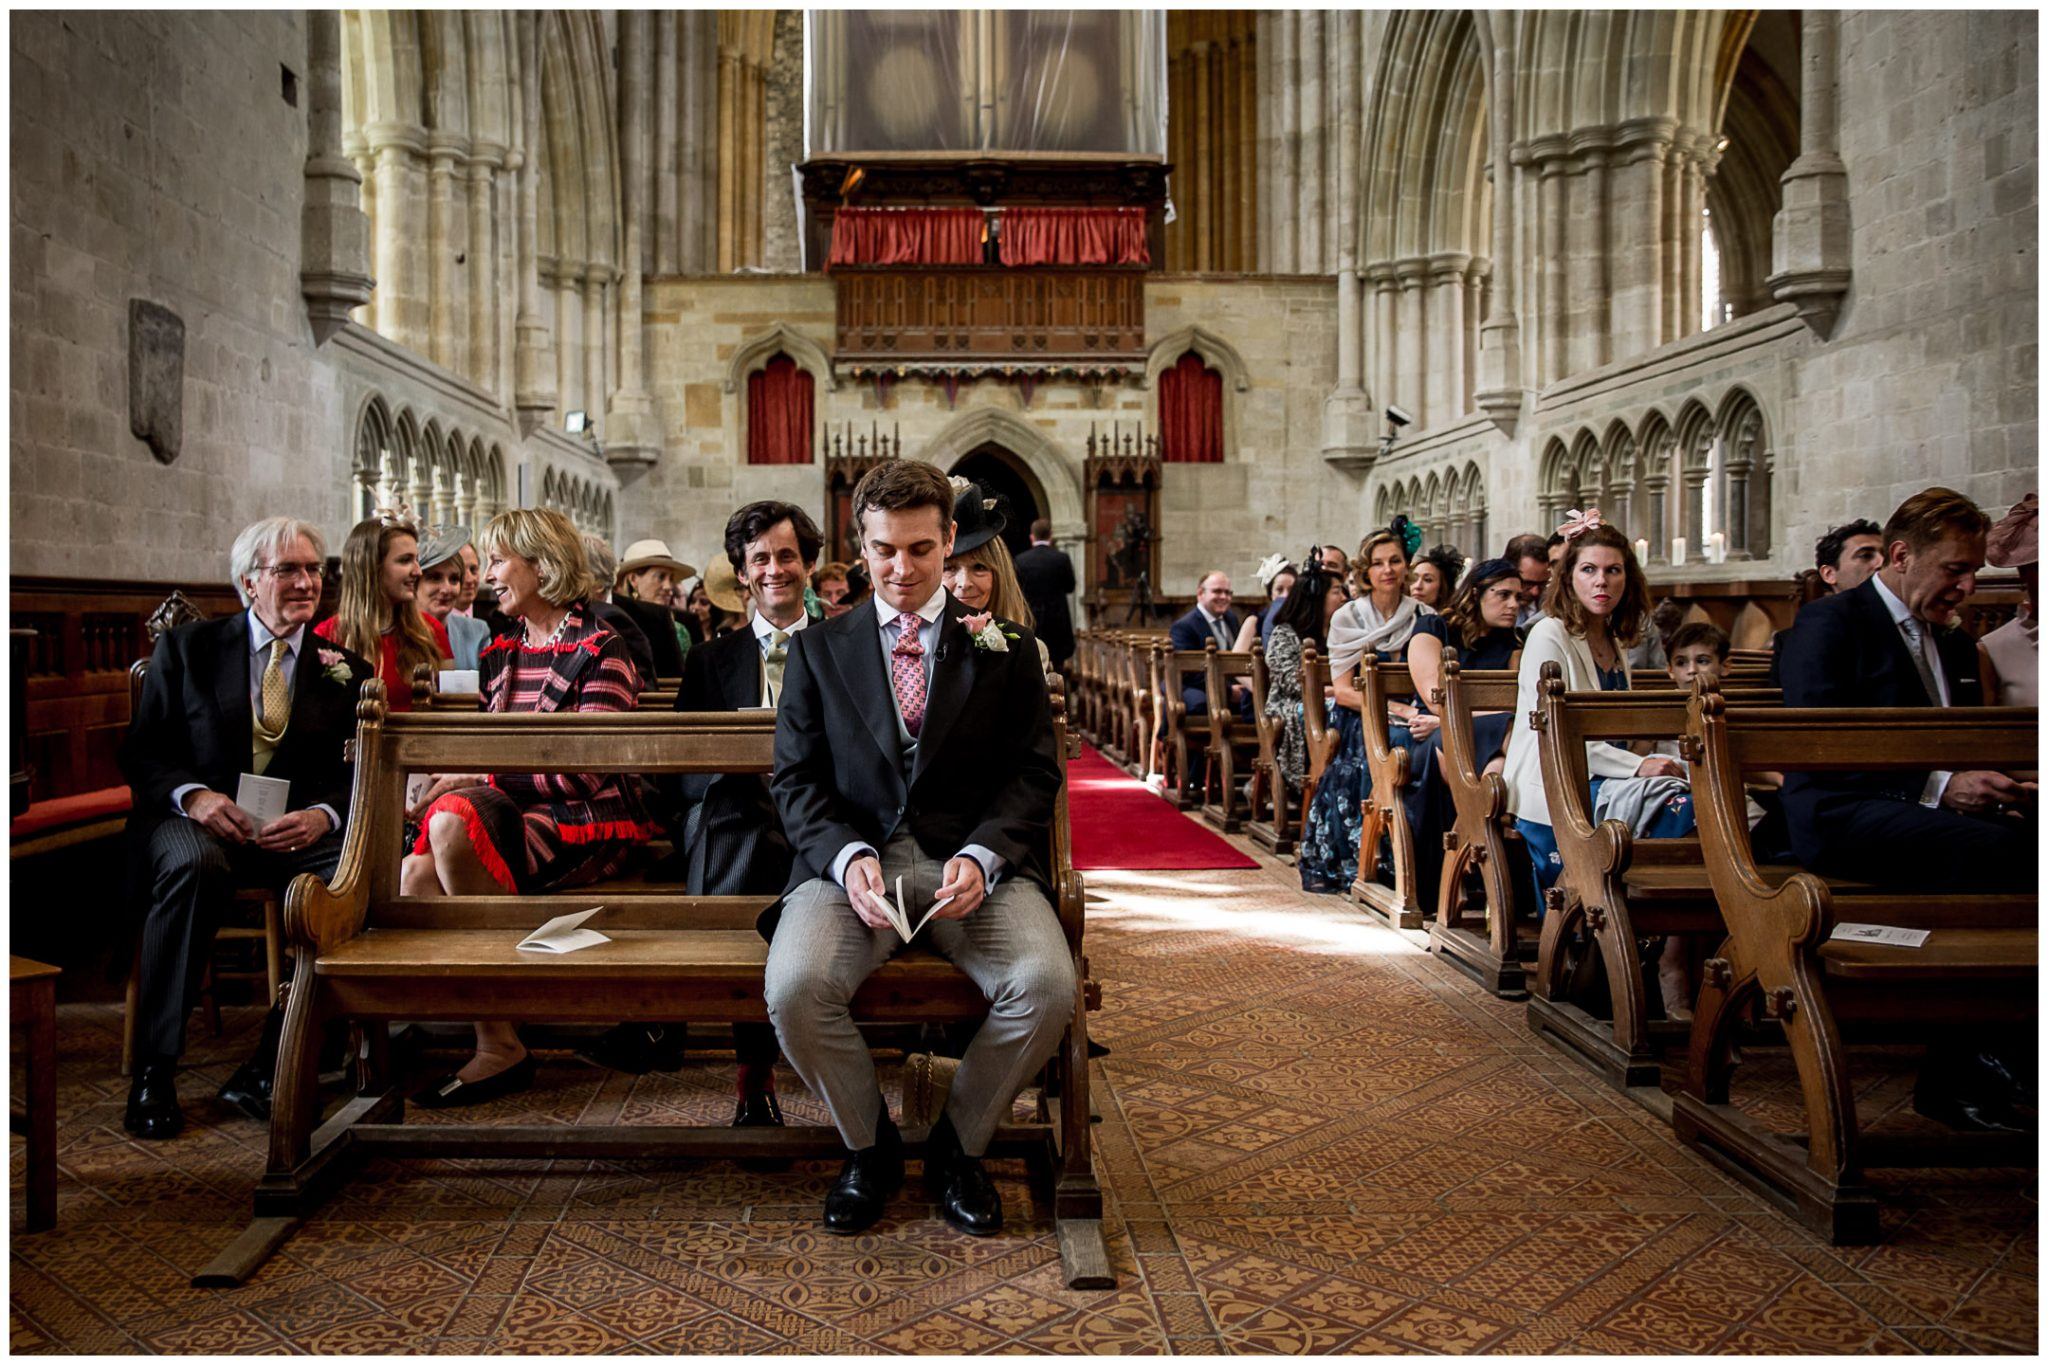 The groom sits alone at the front of the church waiting for his bride to arrive